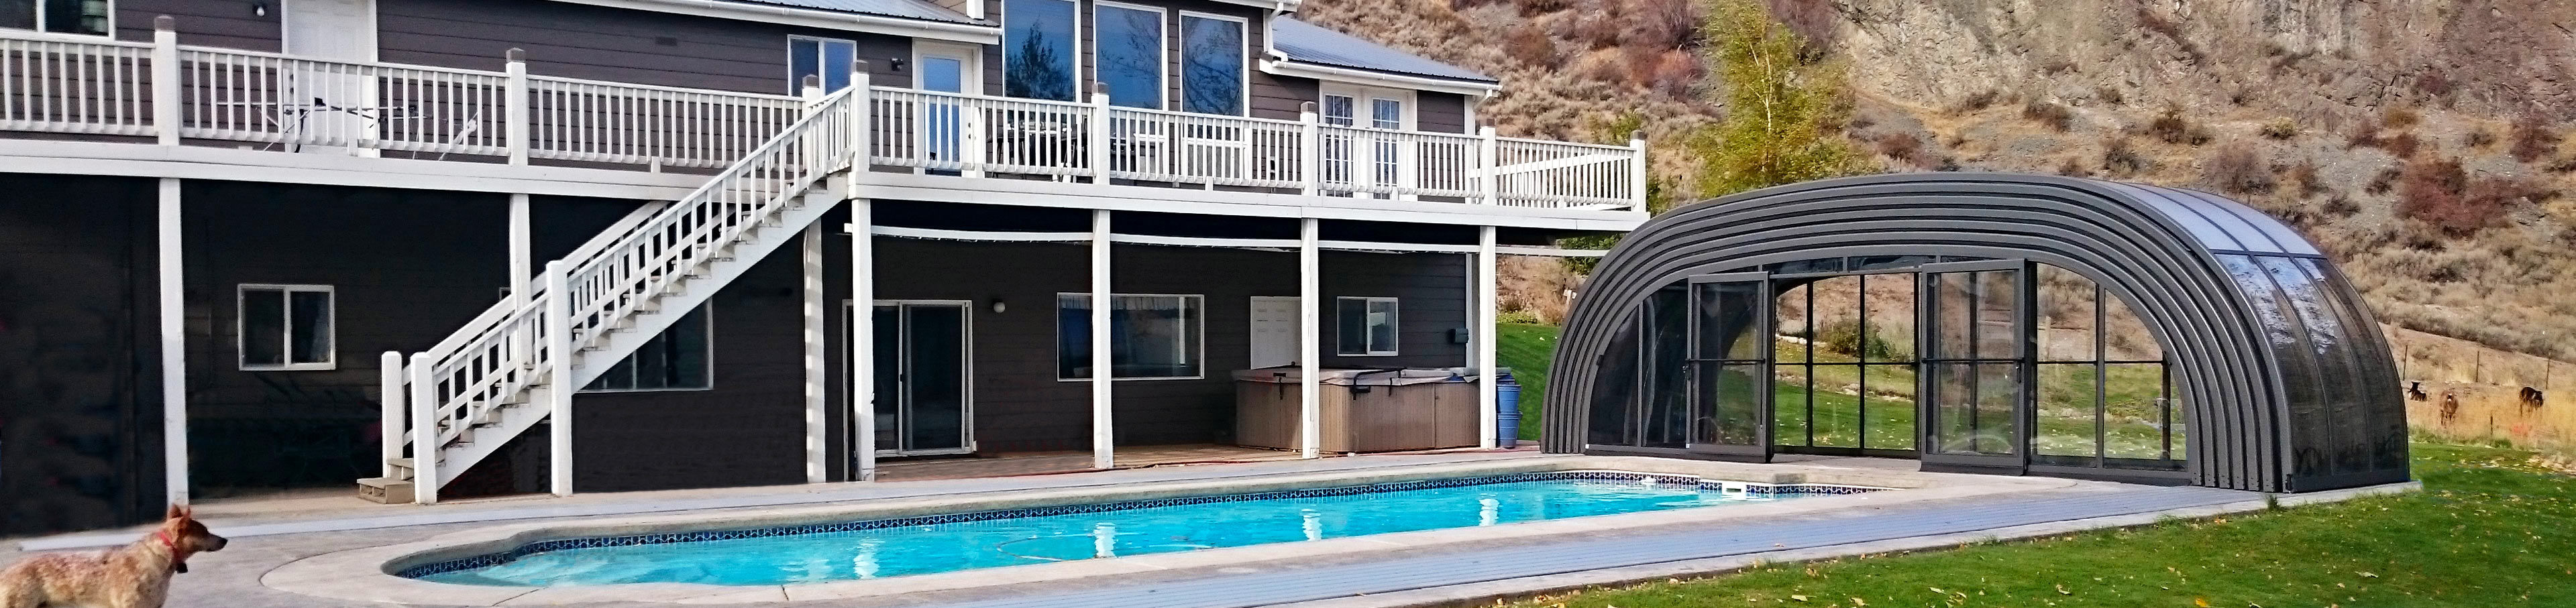 Retractable swimming pool enclosure laguna sunrooms Retractable swimming pool enclosures